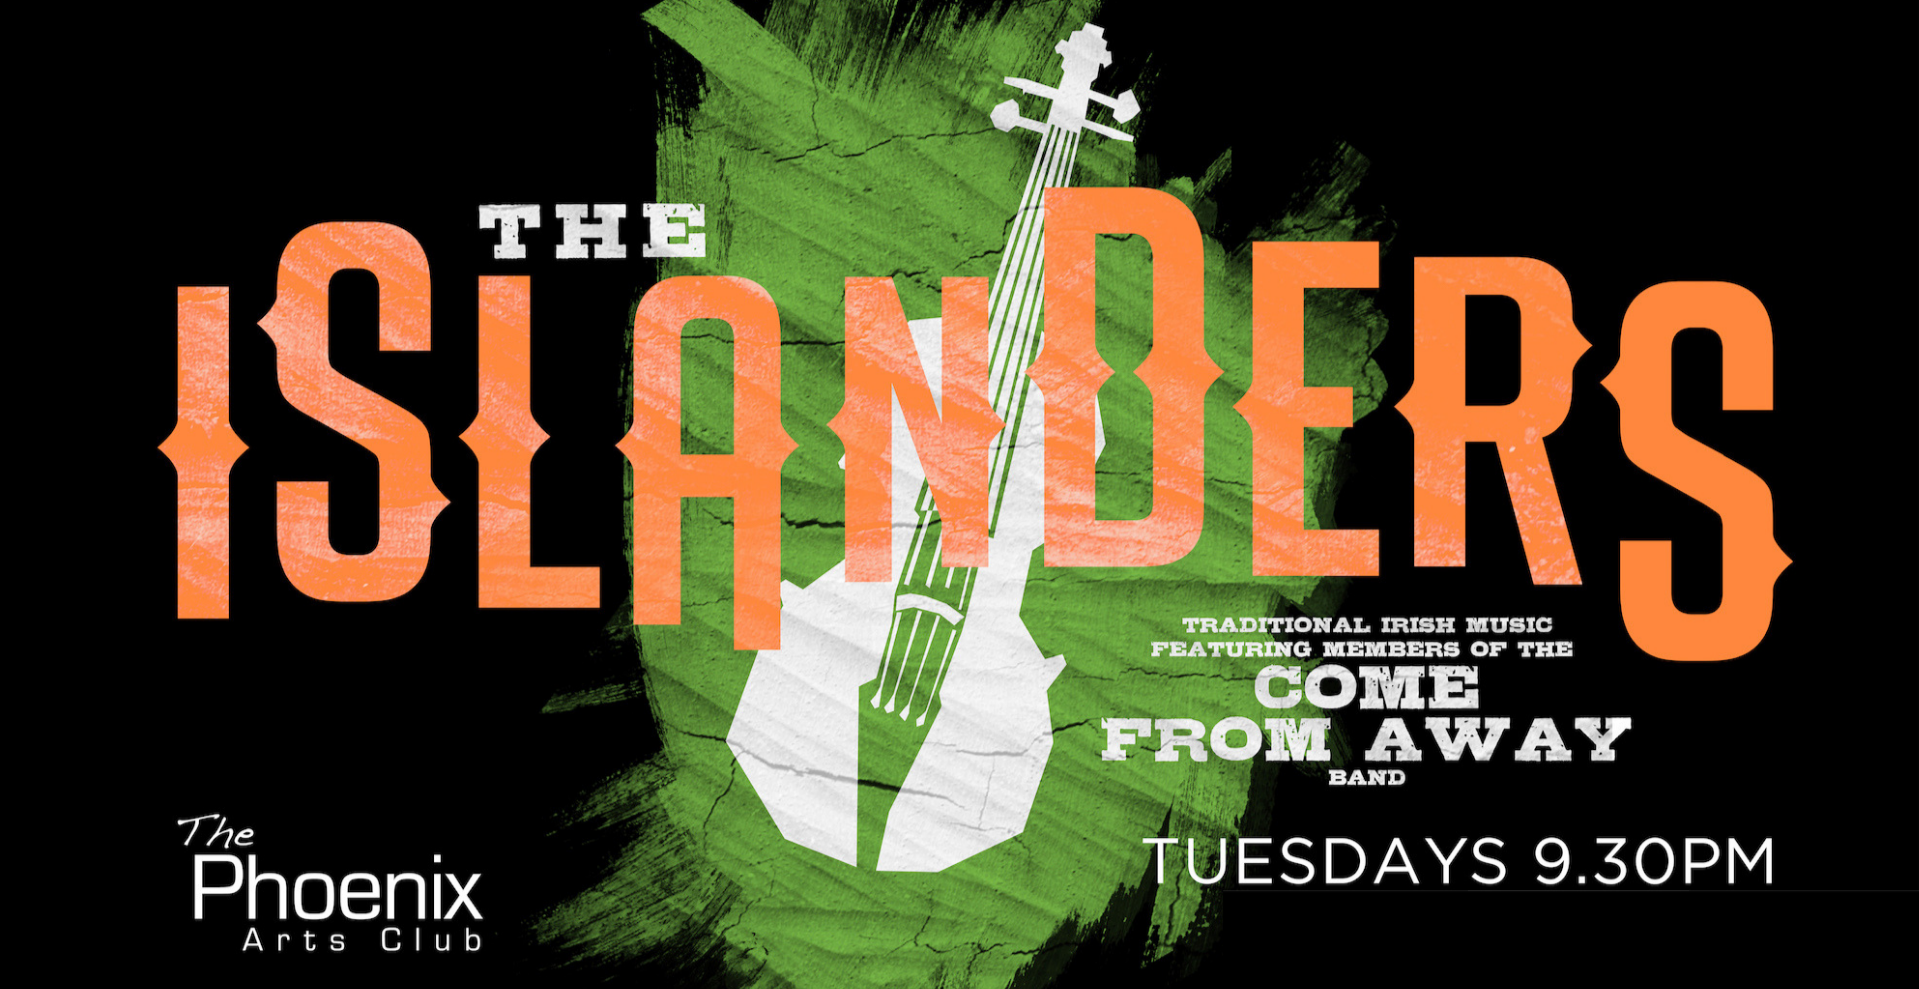 The Islanders: Traditional Irish Folk Music featuring Members of the 'Come From Away' Band